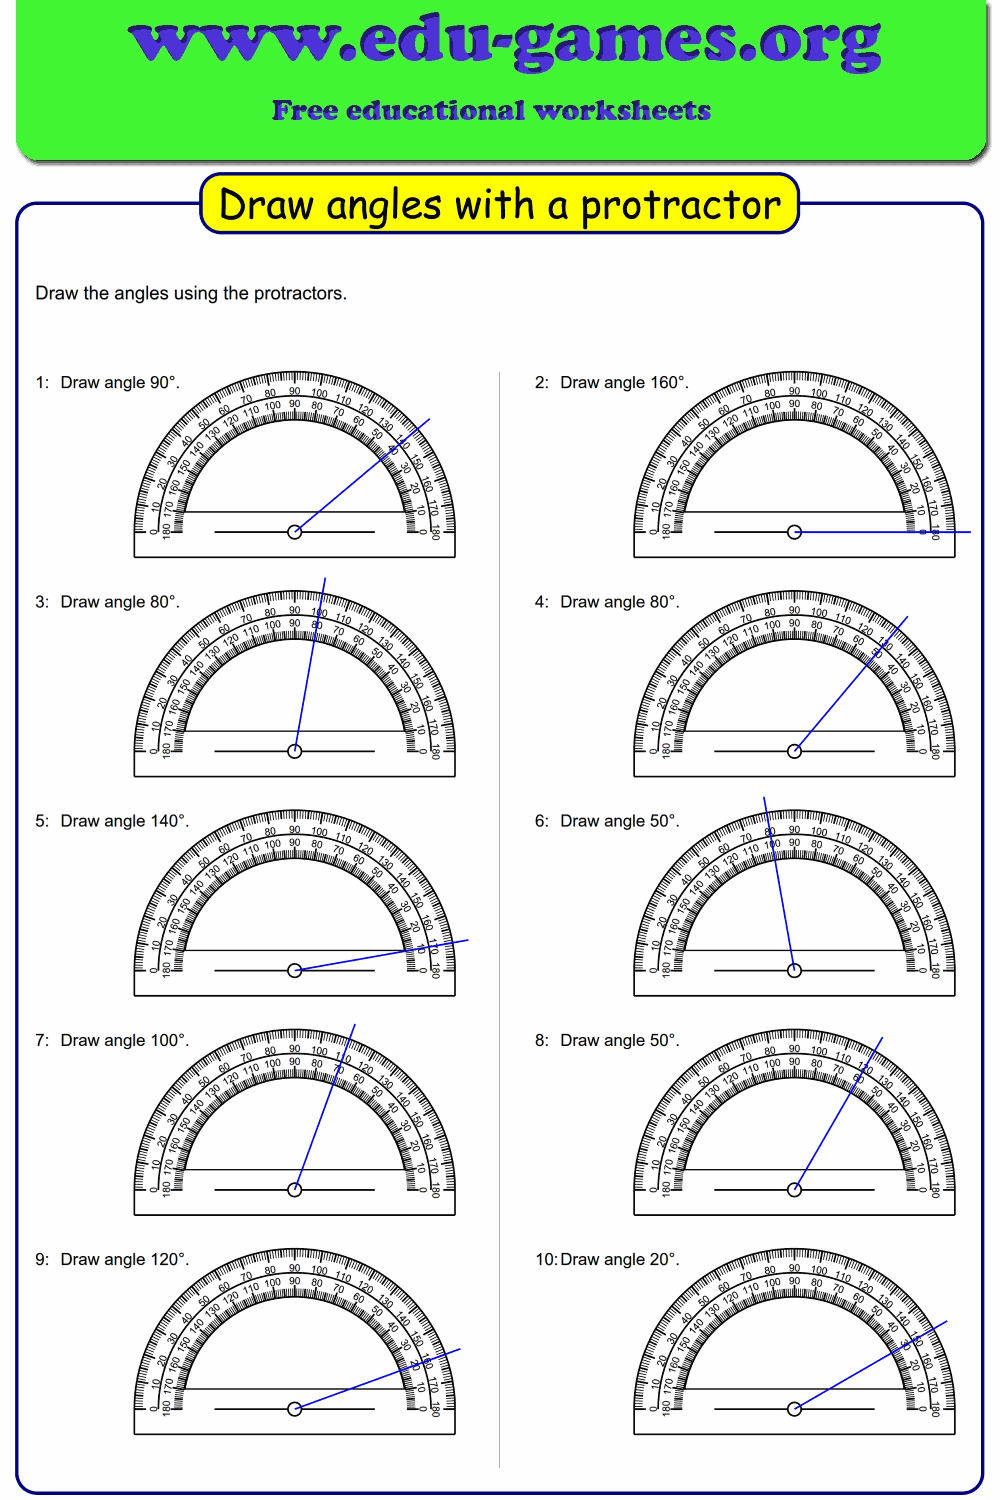 Draw Angles With A Protractor Free Worksheet With 10 Problems No Need For A Protractor Because It Is Printed On Angles Worksheet Worksheets Free Protractor